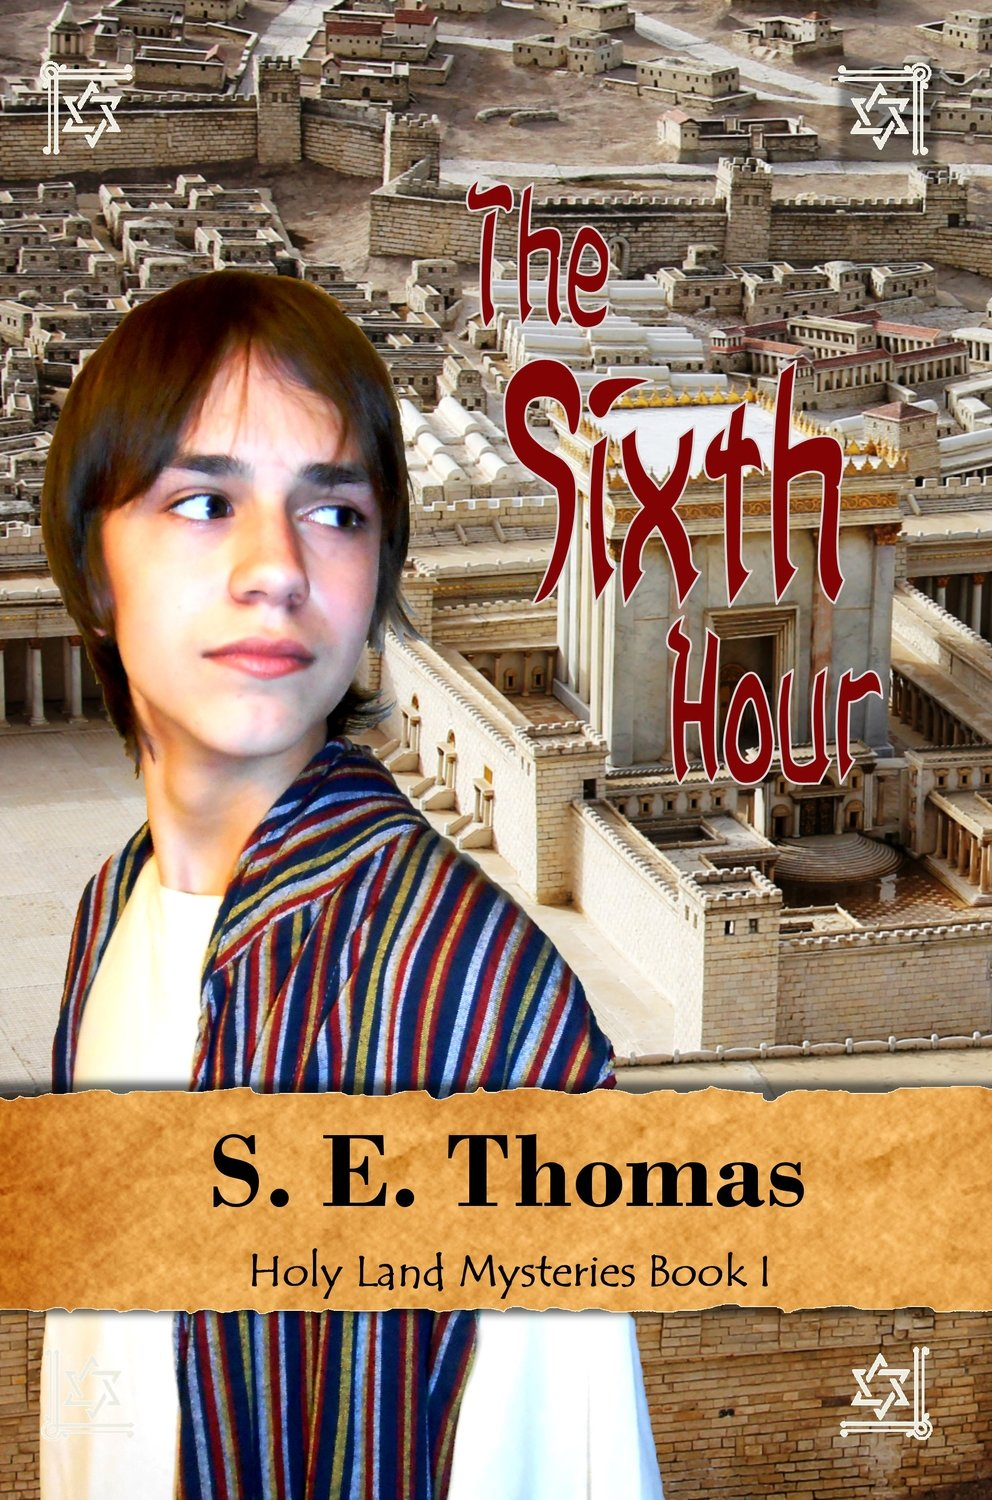 The Sixth Hour (Holy Land Mysteries, Vol 1)